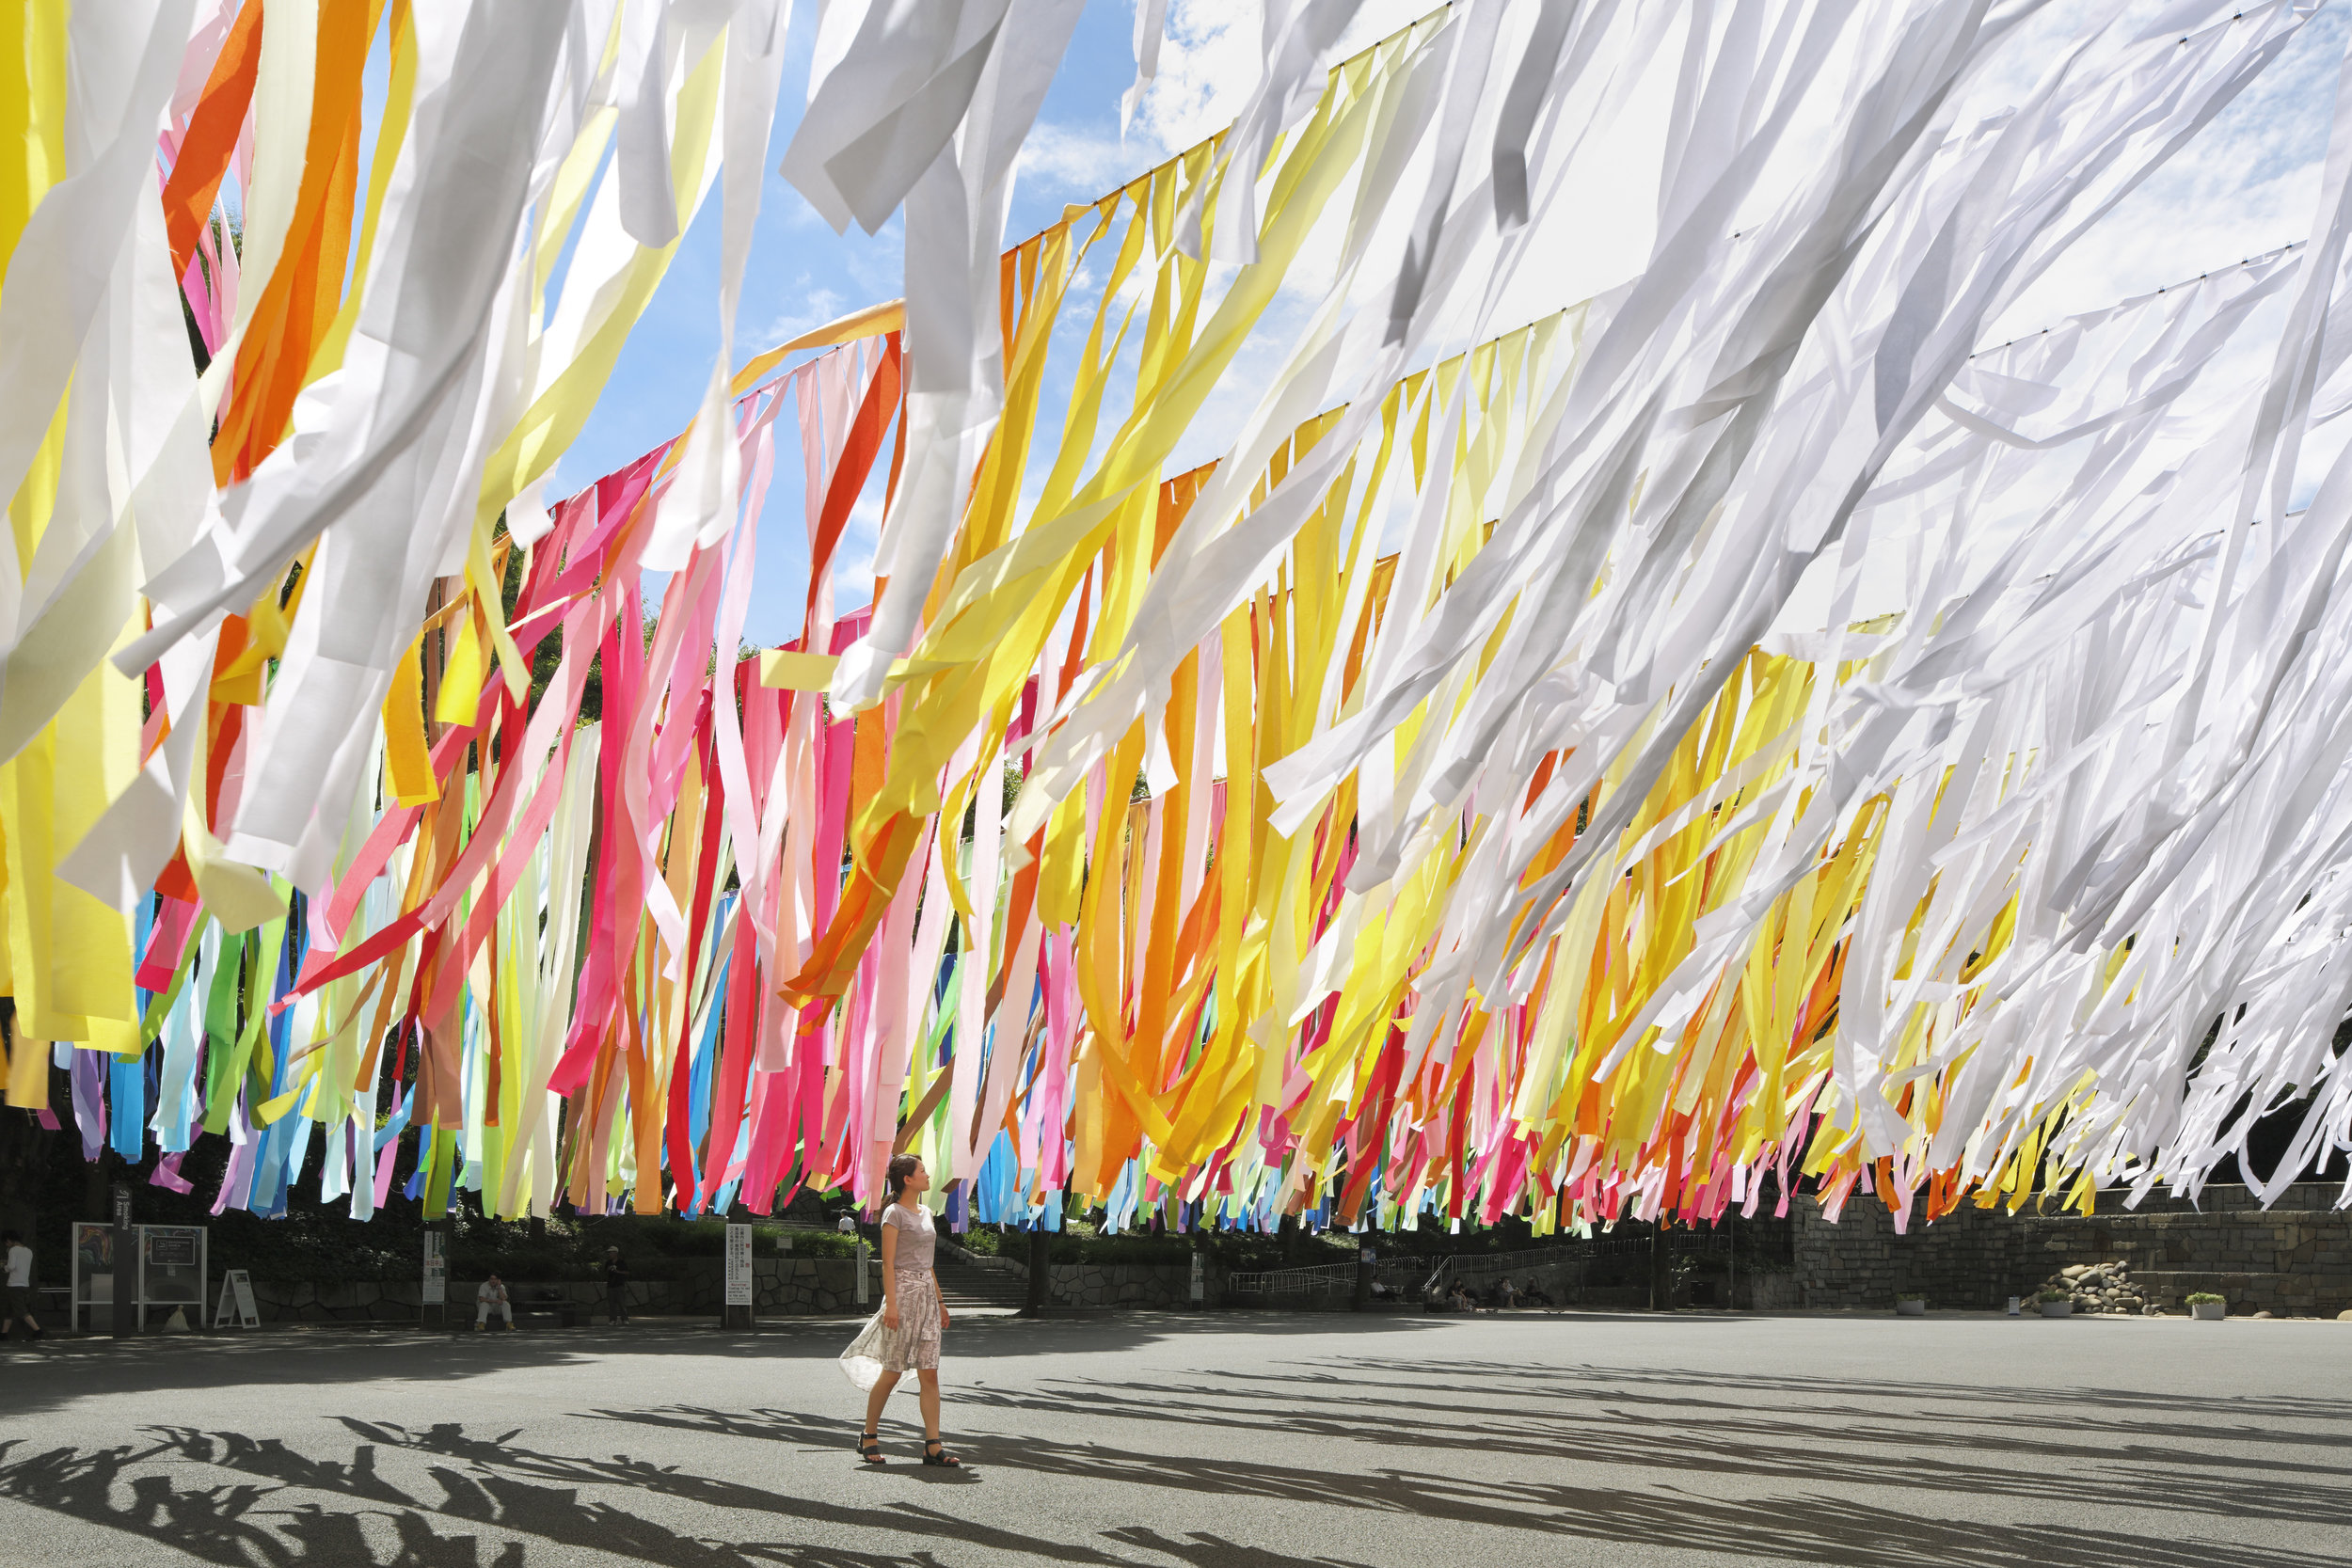 Project : 100 colors / Shinjuku Central Park,  Summer 2014  Architect /designer : emmanuelle moureaux (emmanuelle moureaux architecture + design) Photograph : Daisuke Shima / Nacasa & Partners